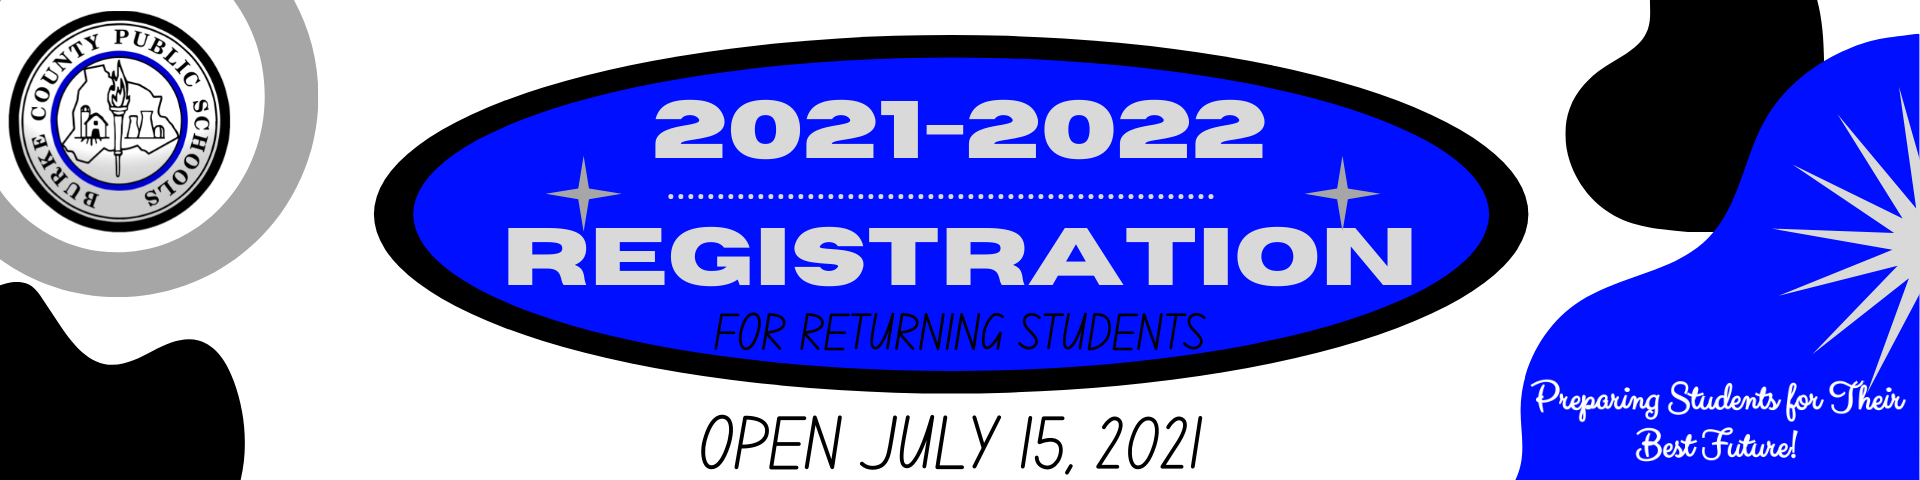 2021-2022 Returning Student Annual Verification and Registration Open July 15, 2021